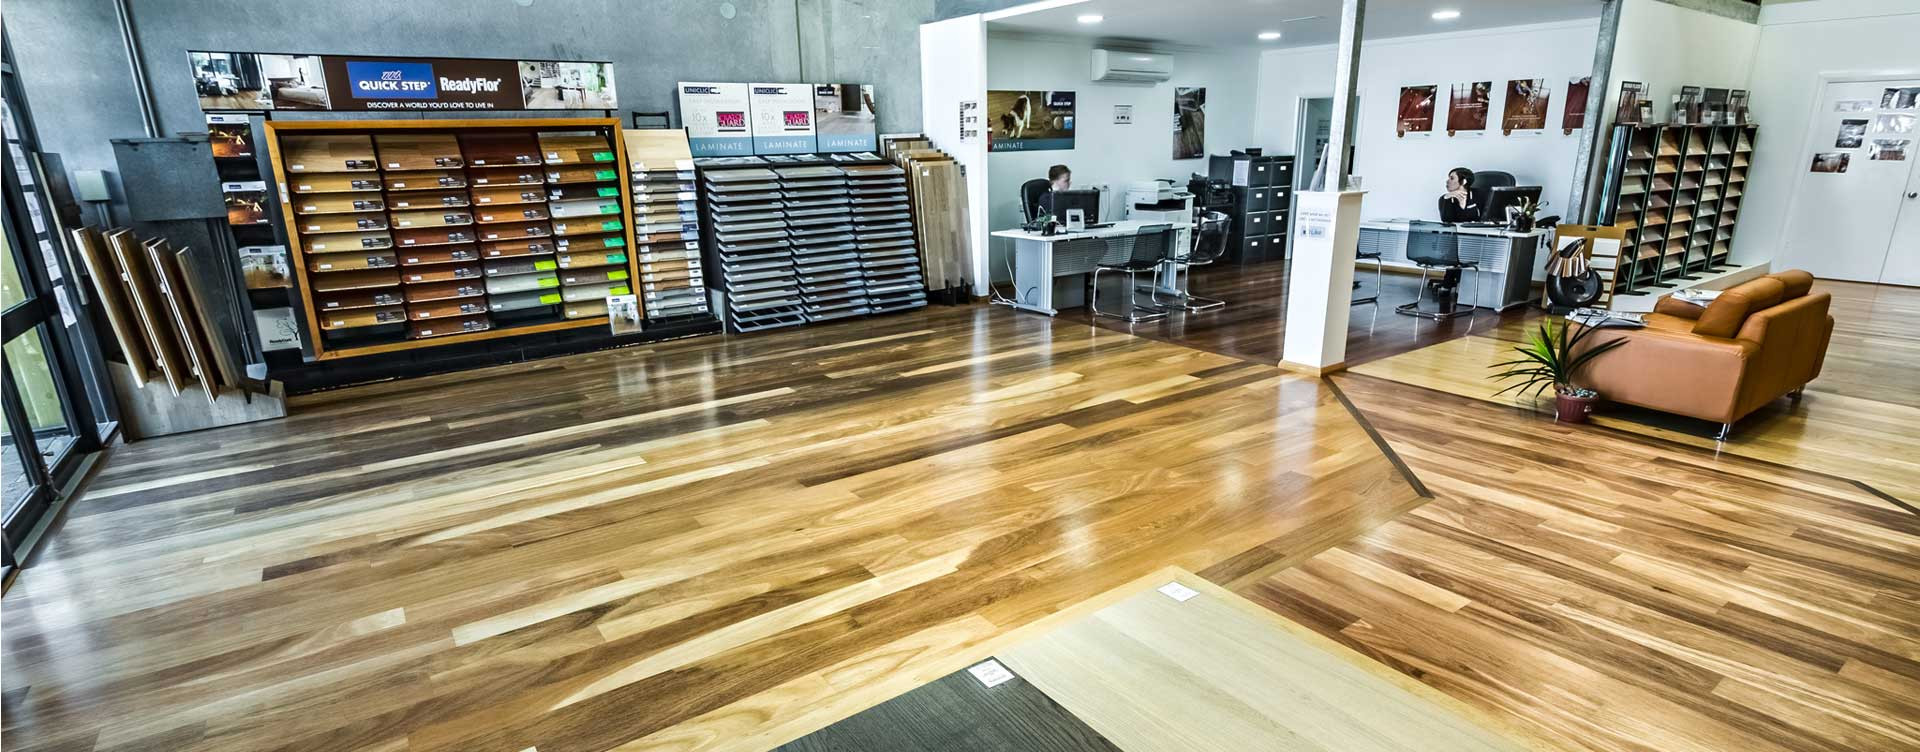 laminate hardwood flooring for sale of timber flooring perth coastal flooring wa quality wooden intended for thats why they call us the home of fine wood floors